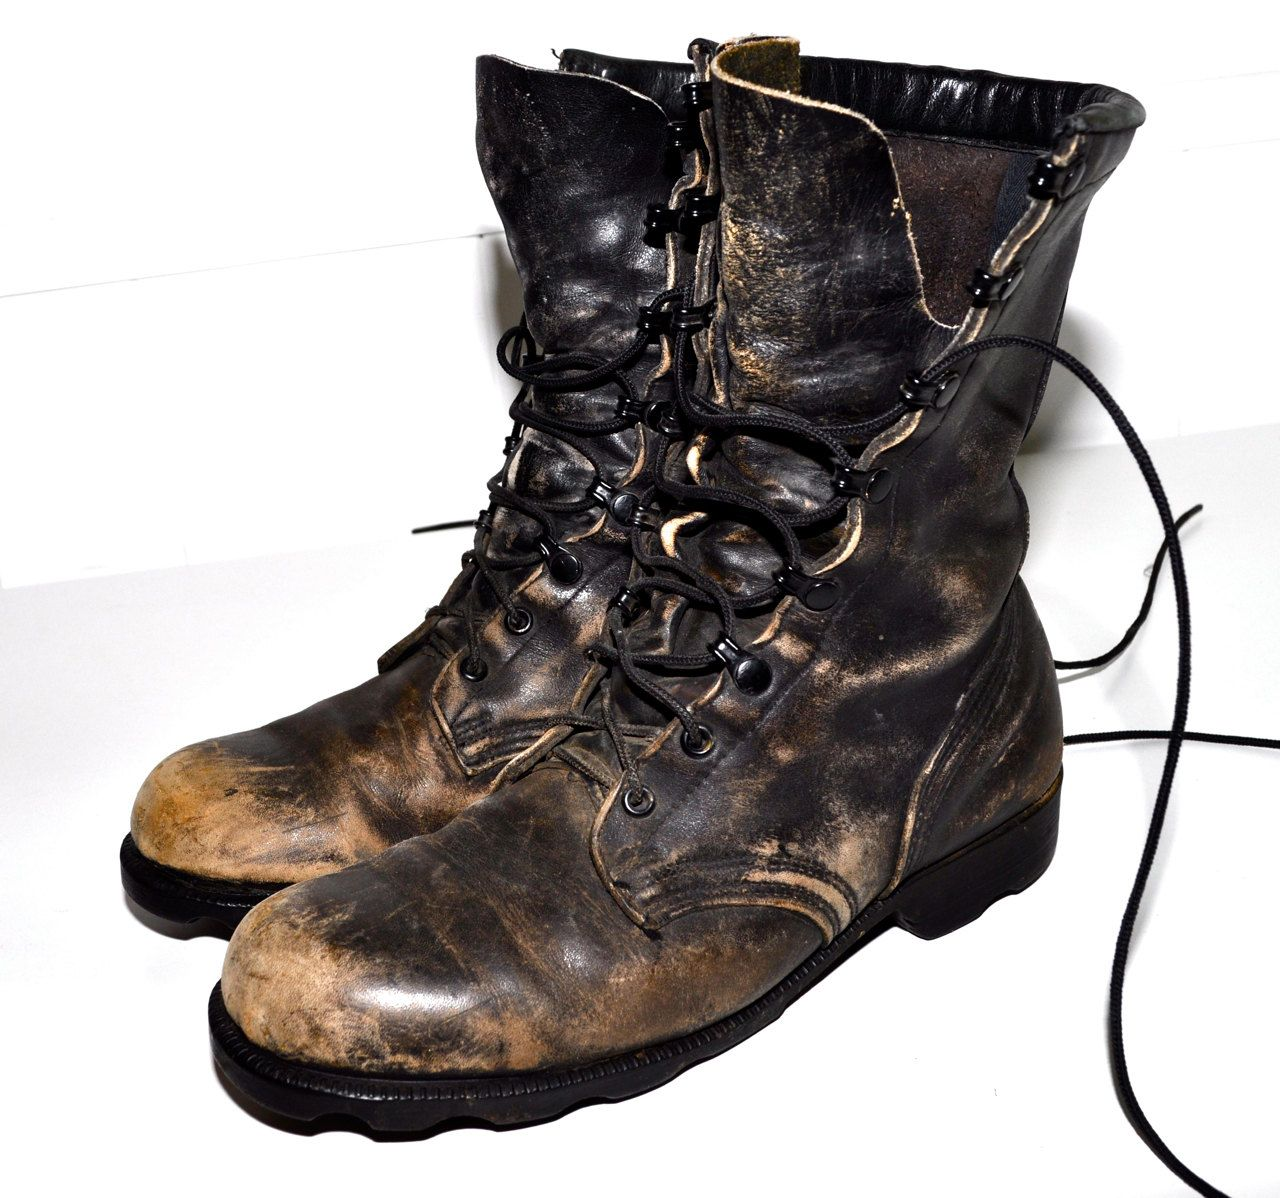 5d3acfad0364b distressed combat boots | Distressed Leather Faded Black MILITARY ...